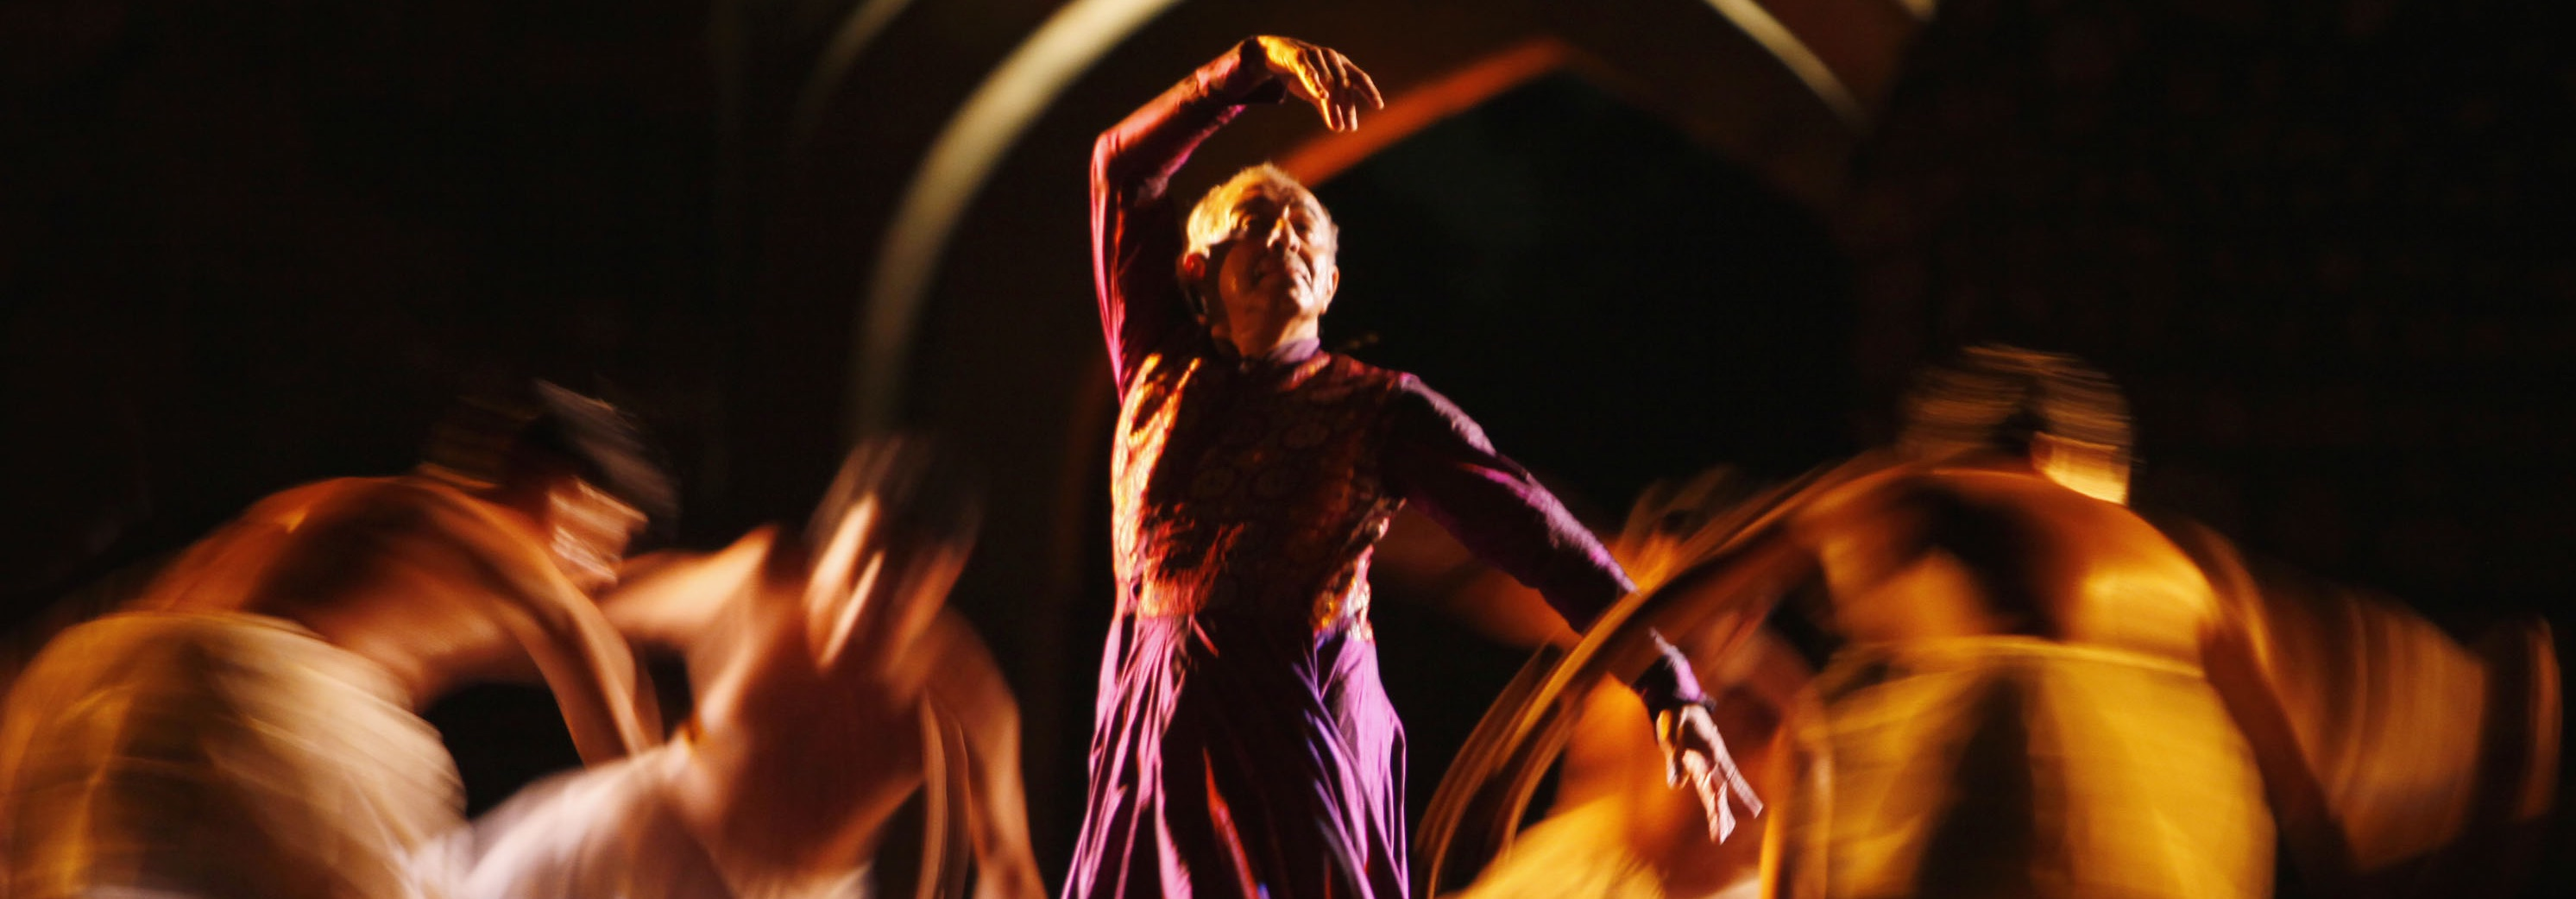 Astad Deboo presenting 'Rhythm Divine – River Runs Deep' at the Ananya festival in New Delhi. Credit: Special arrangement